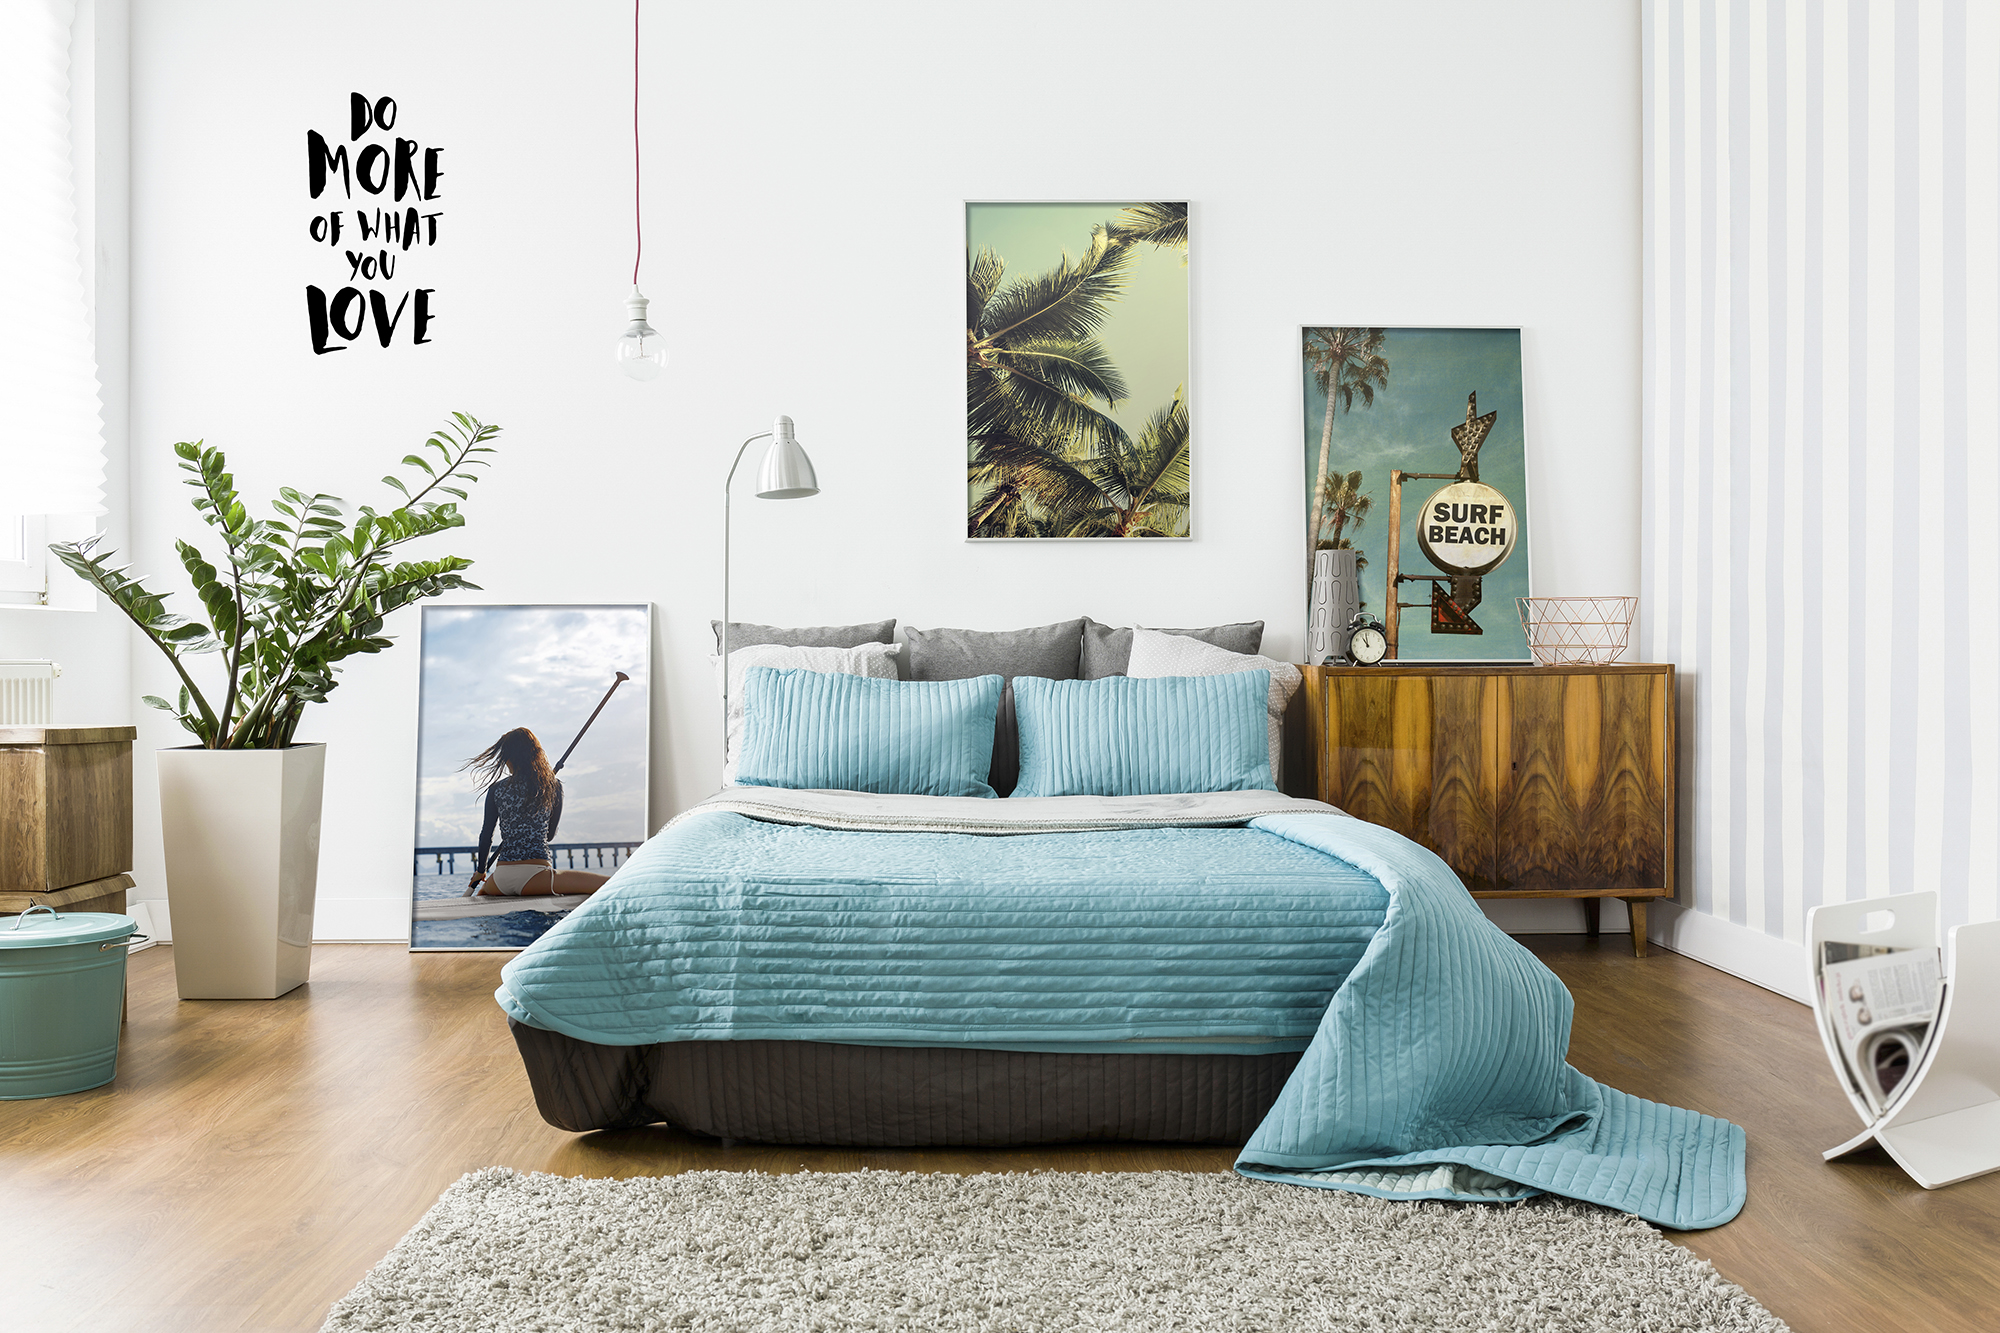 Lets surf • Bedroom - Eclectic - Art & lifestyle - Landscapes - Posters - Stickers